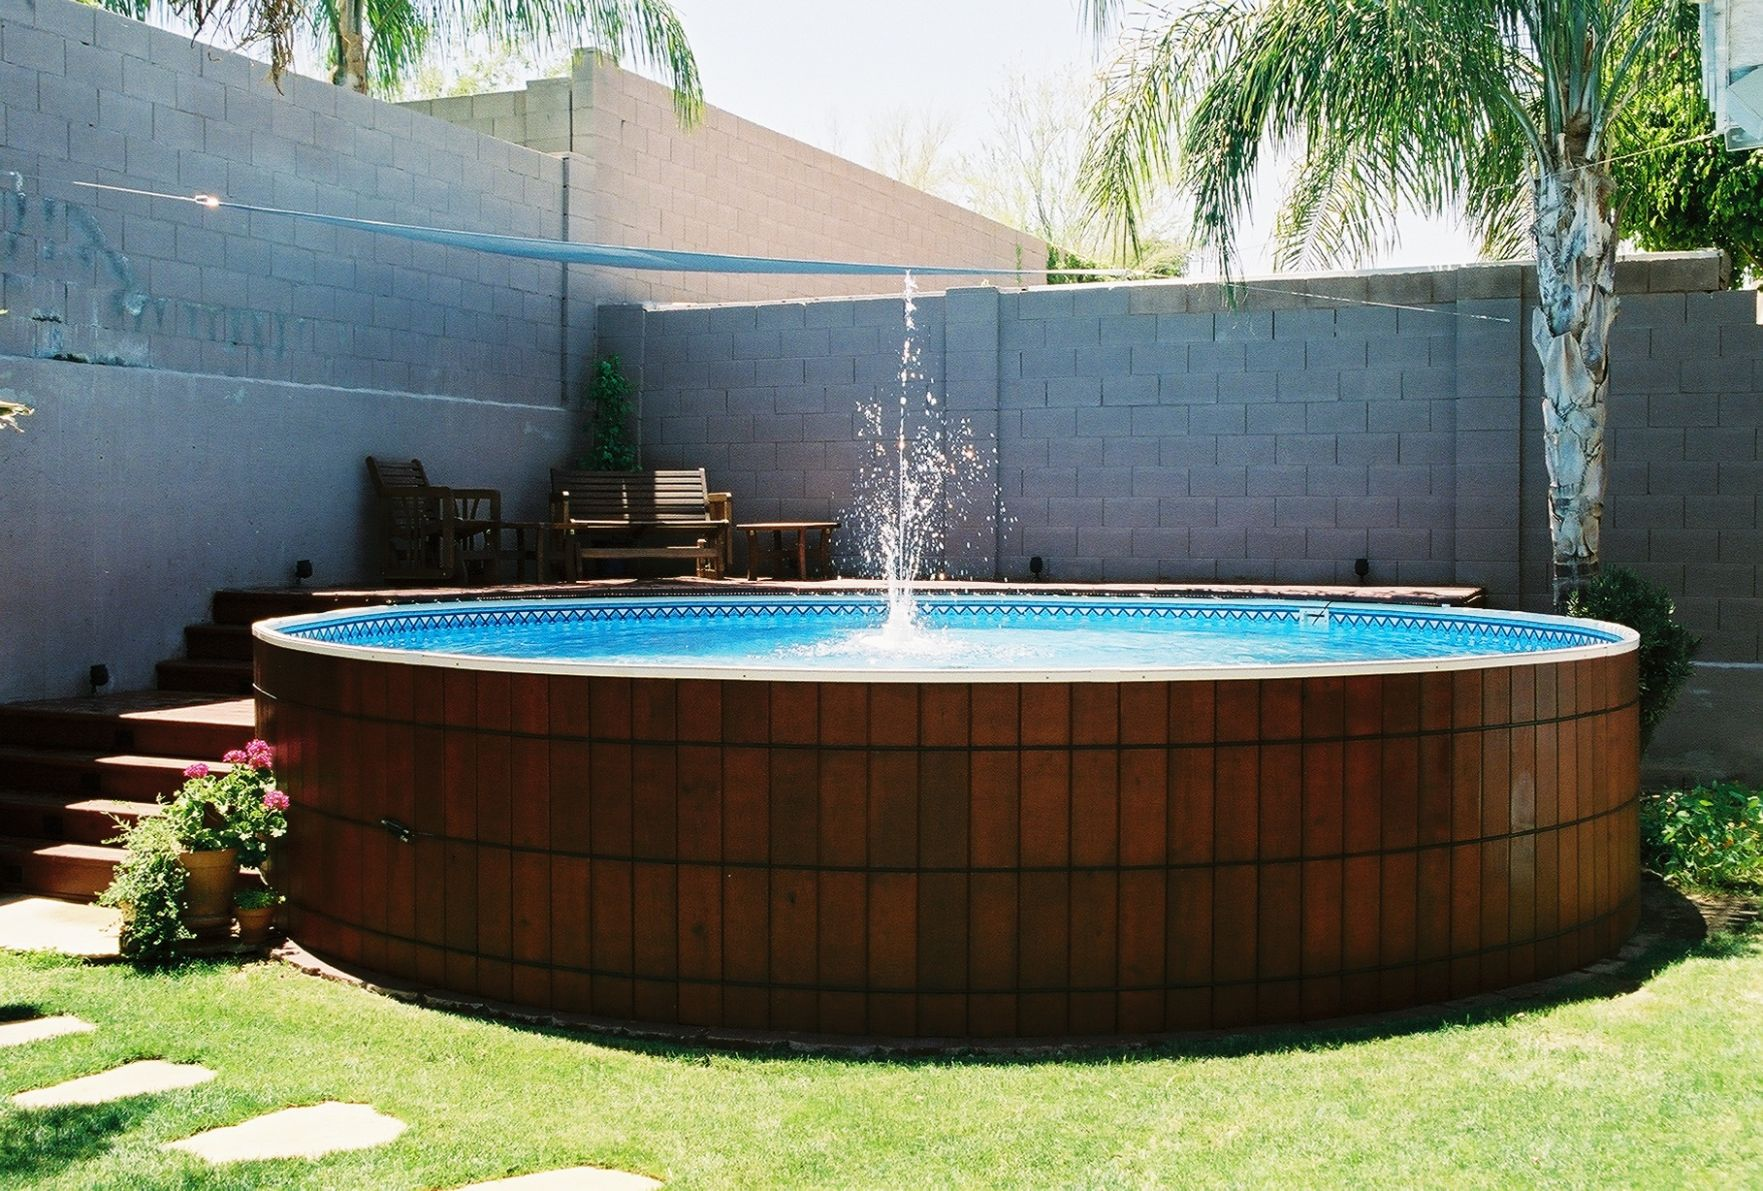 12 Best Above Ground Pool Ideas With Building Tips | Decor Or Design - pool ideas diy